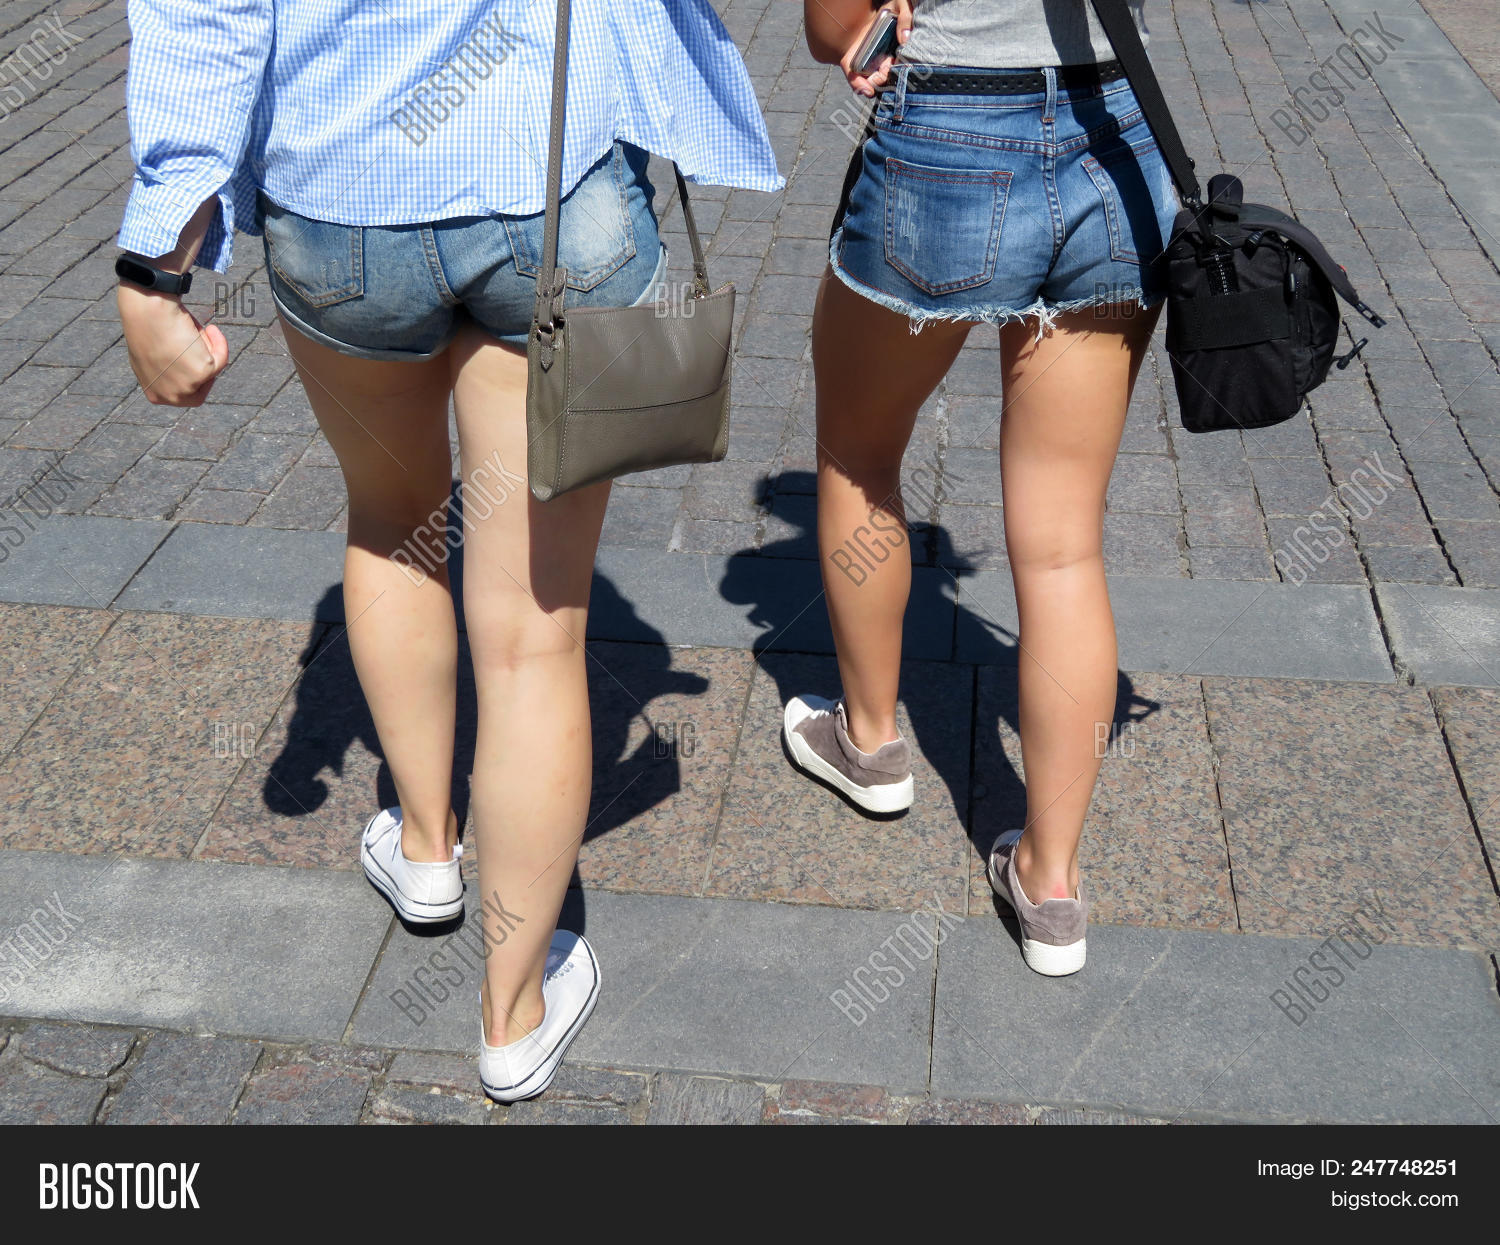 Two Girls Walking Image & Photo (Free Trial) | Bigstock